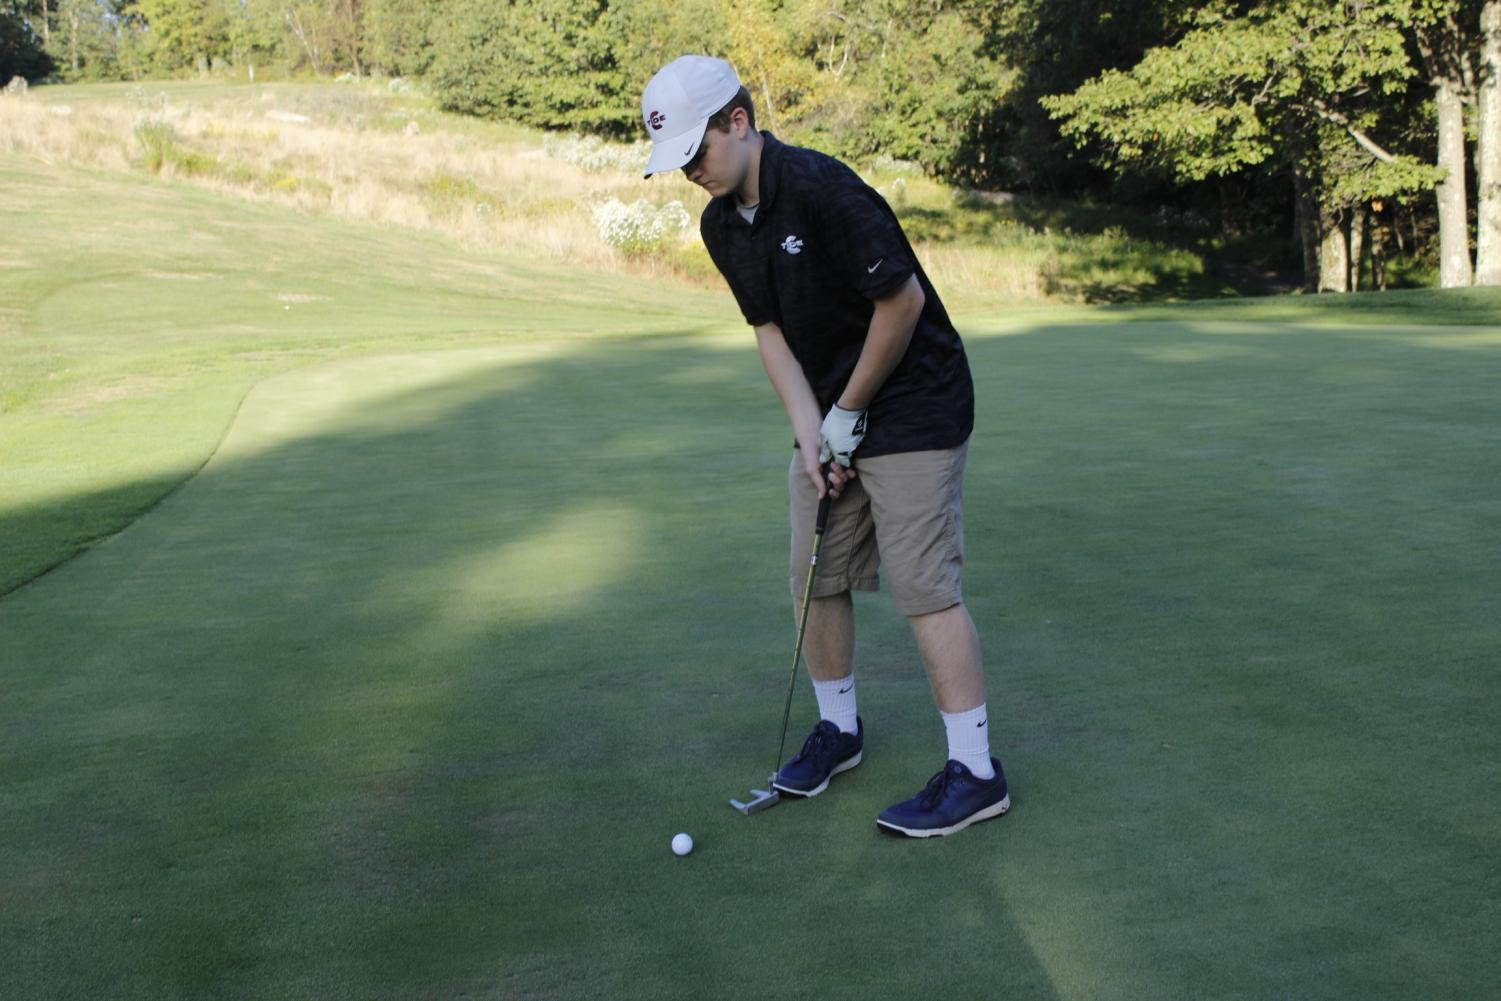 "Junior David Troutman is preparing to hit the ball. He wanted to make it into the hole to help his team. ""I want to focus and try my best on all 18 holes,"" said Troutman's teammate, Dominick Chiccini."